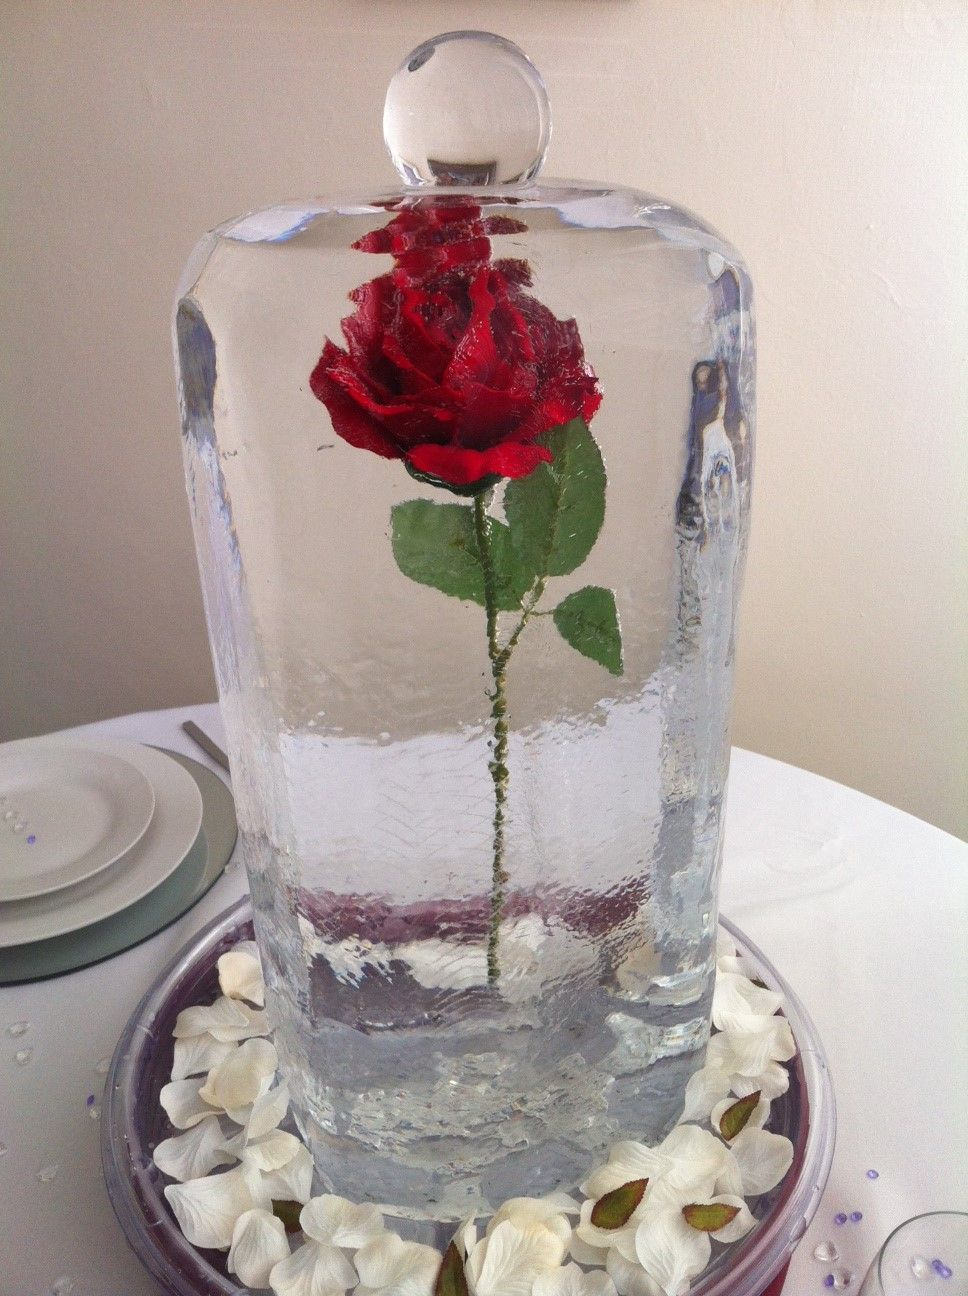 Our beauty and the beast ice table centrepiece